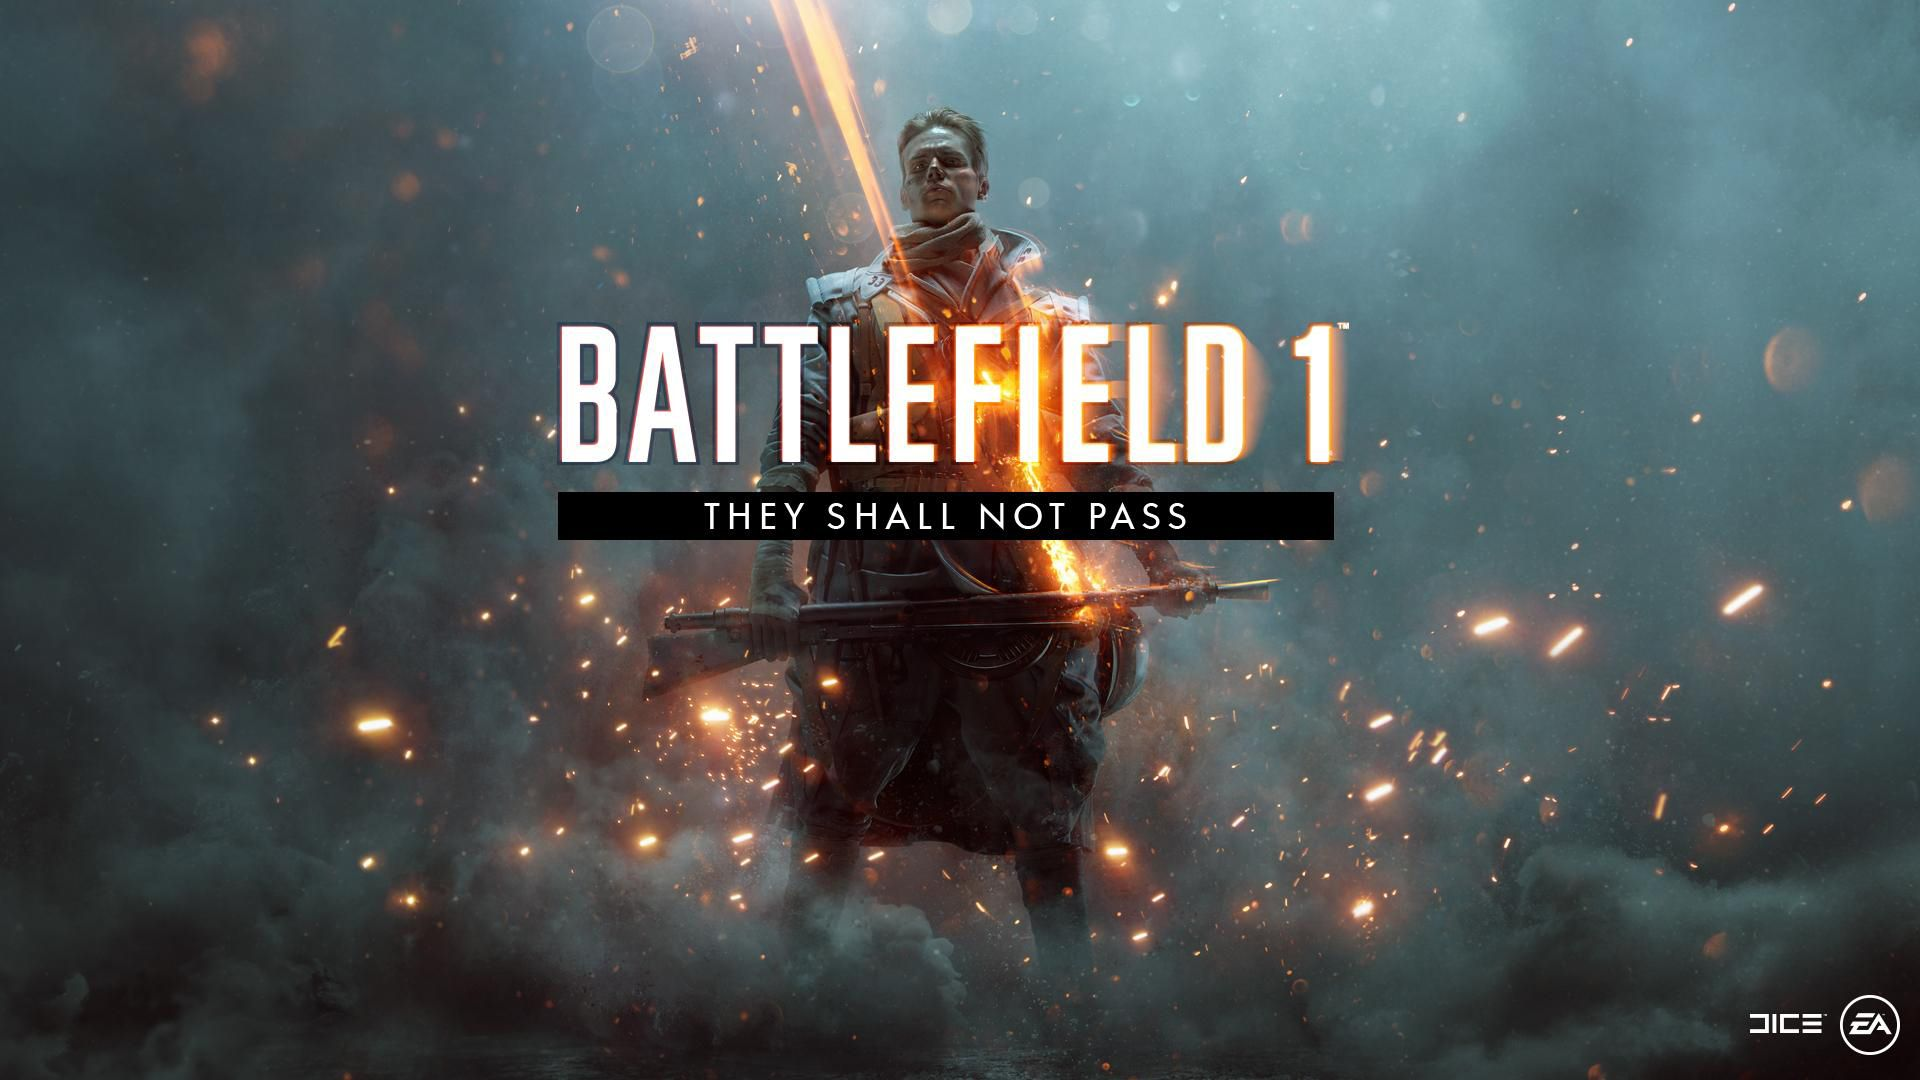 battlefield 1 they shall not pass wallpaper | battlefield game news